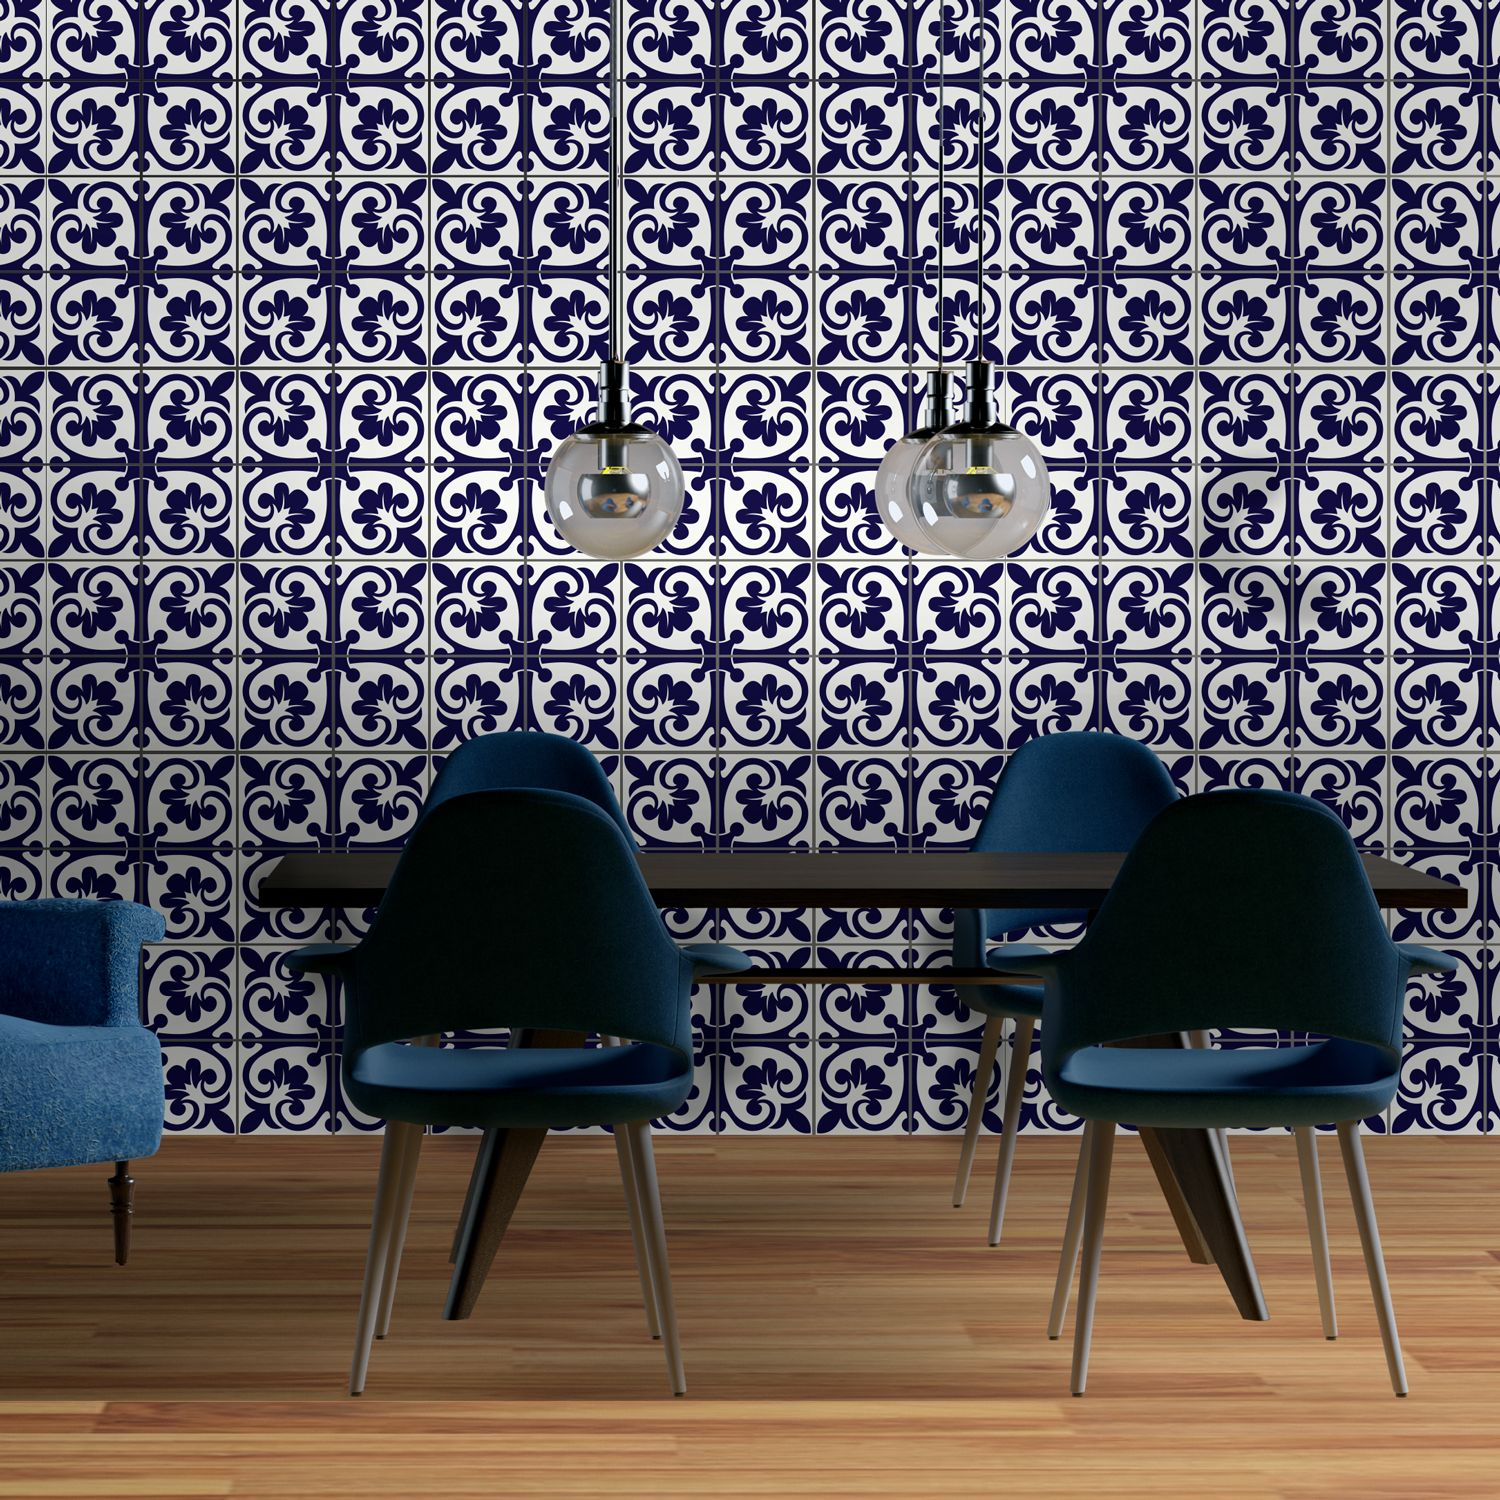 Betsy Monocromatic Dark Blue Victorian Wall Tile Sticker Set - 15 x 15 cm (6 x 6 in) - 24 pcs, DIY Art, Home Decorations, Decals, Kitchen Decor, Bathroom Ideas